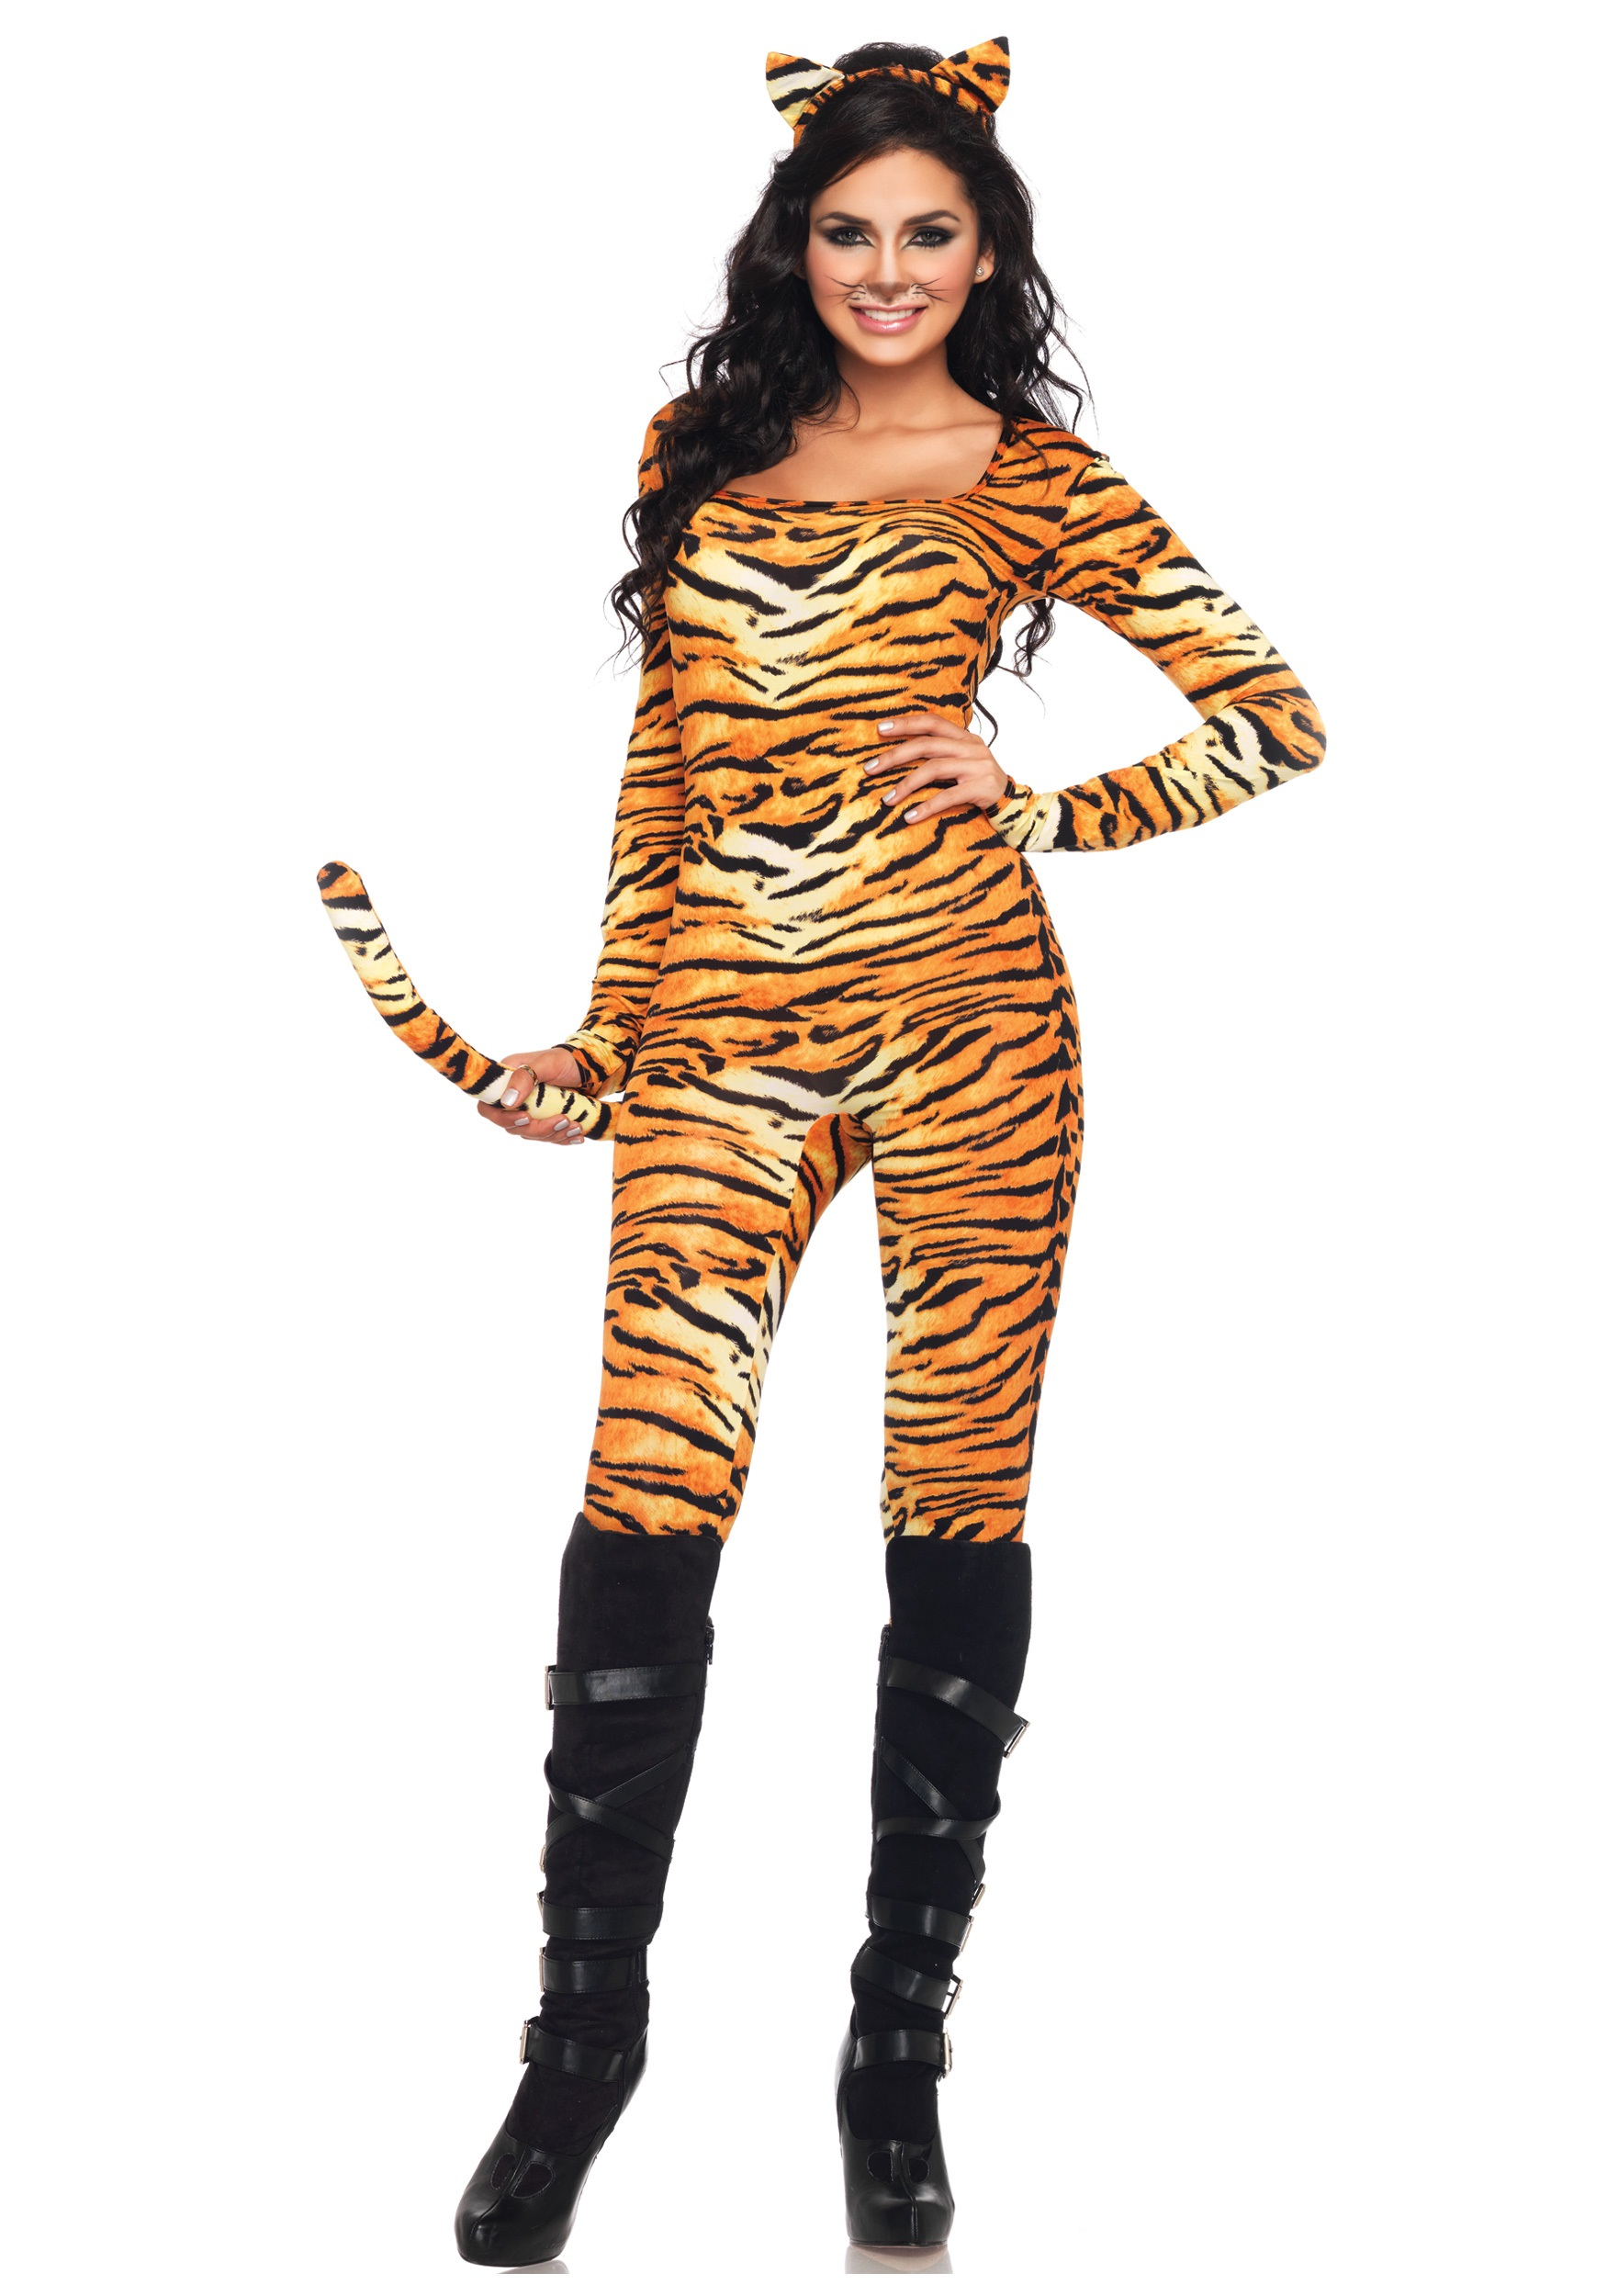 Sexy Wild Tiger Costume  sc 1 st  Halloween Costumes & Tiger Costumes For Adults u0026 Kids - HalloweenCostumes.com